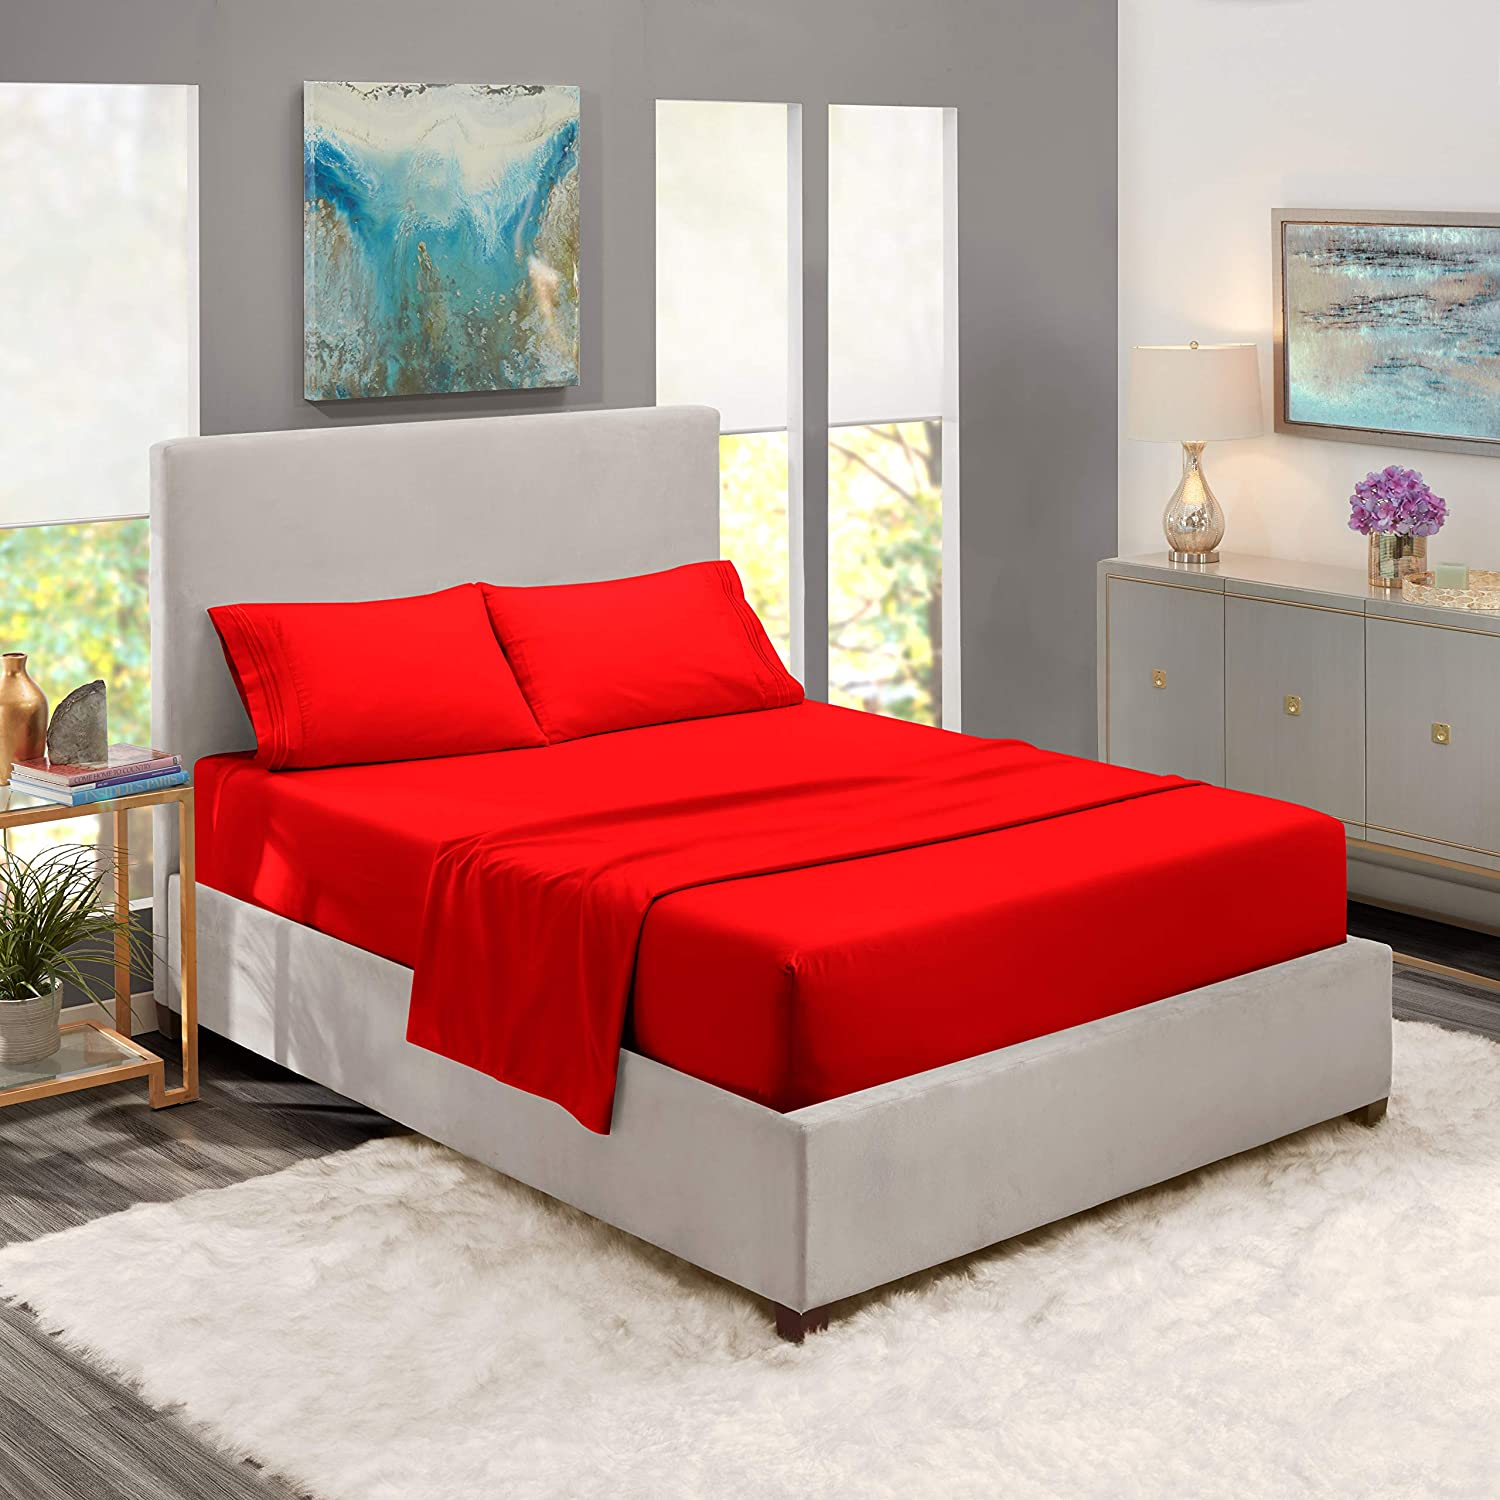 Nestl Bedding 4 Piece Sheet Set - 1800 Deep Pocket Bed Sheet Set - Hotel Luxury Double Brushed Microfiber Sheets - Deep Pocket Fitted Sheet, Flat Sheet, Pillow Cases, Olympic Queen - Cherry Red